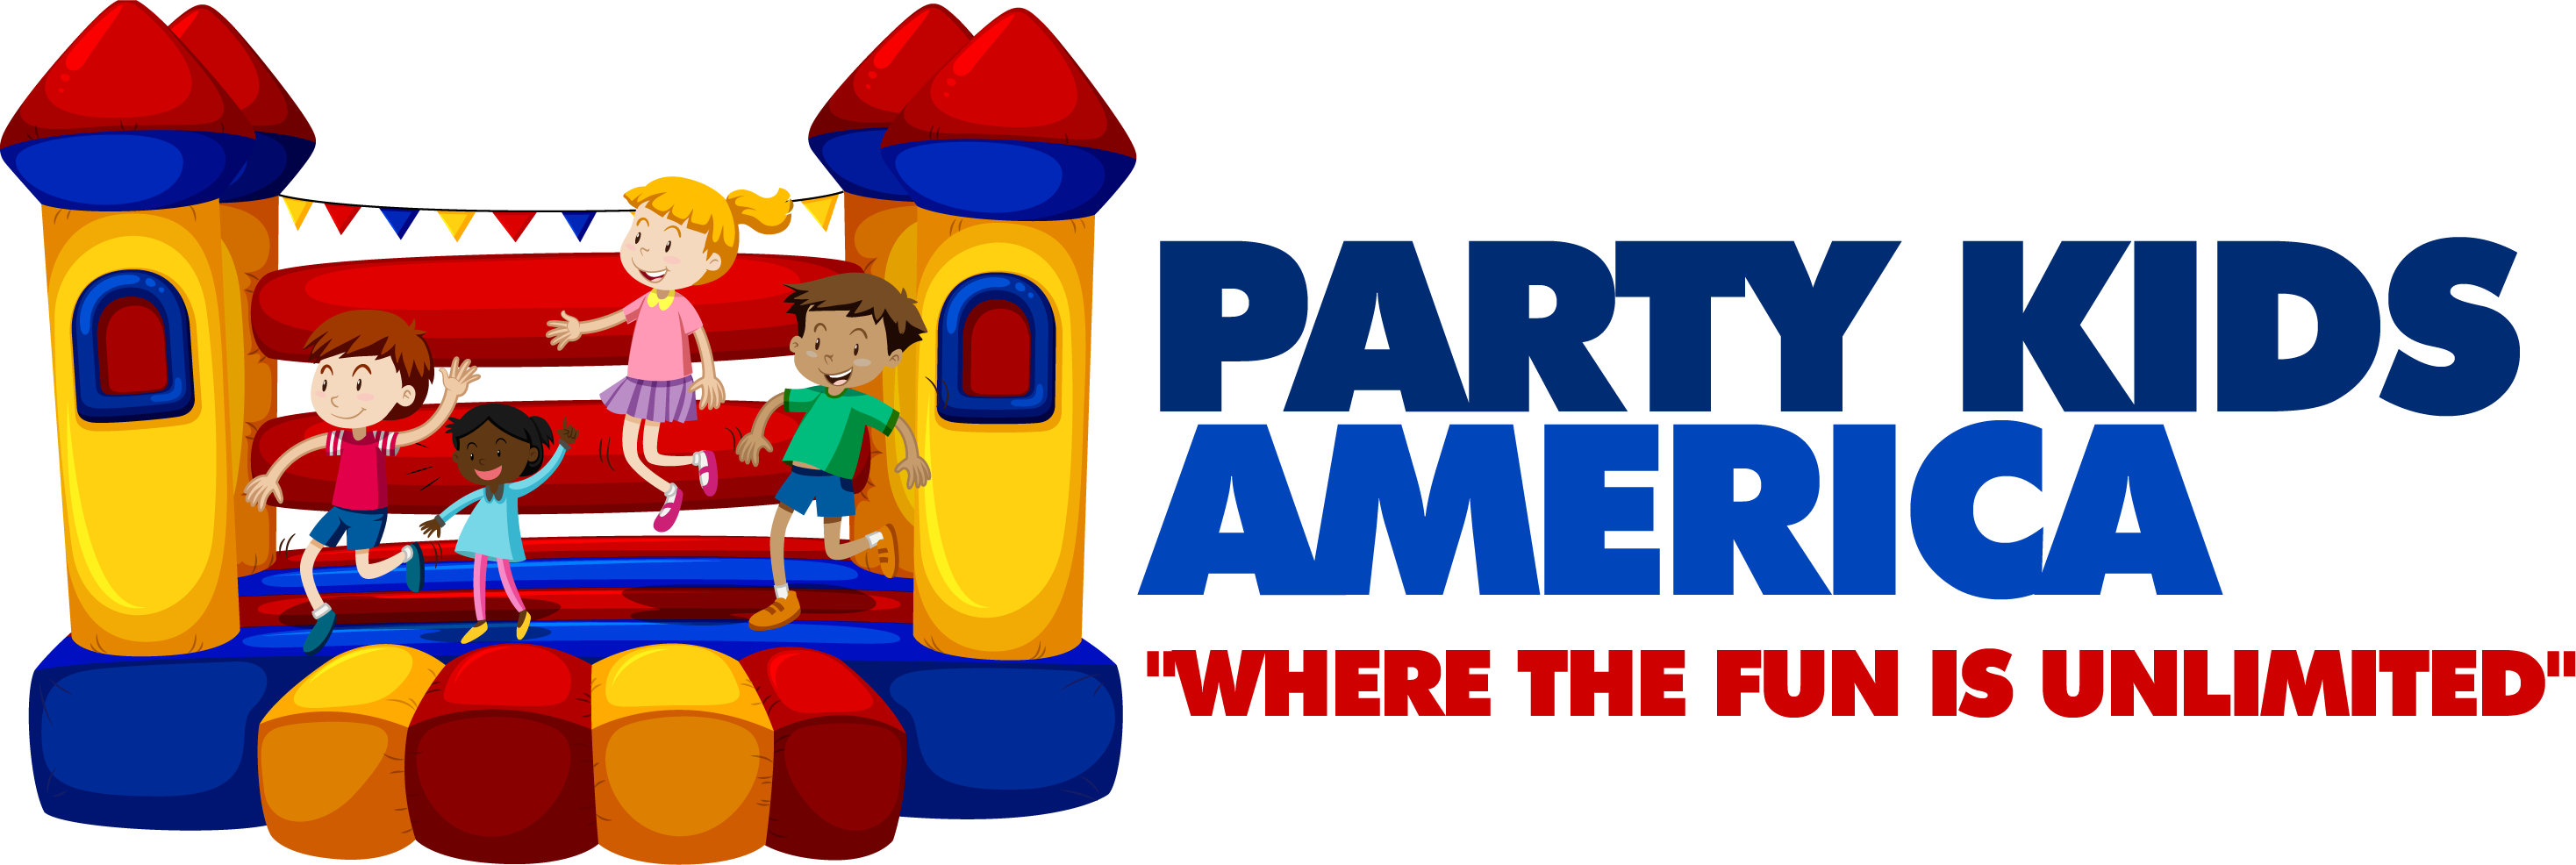 Water clipart water slide. Collection of free inflating